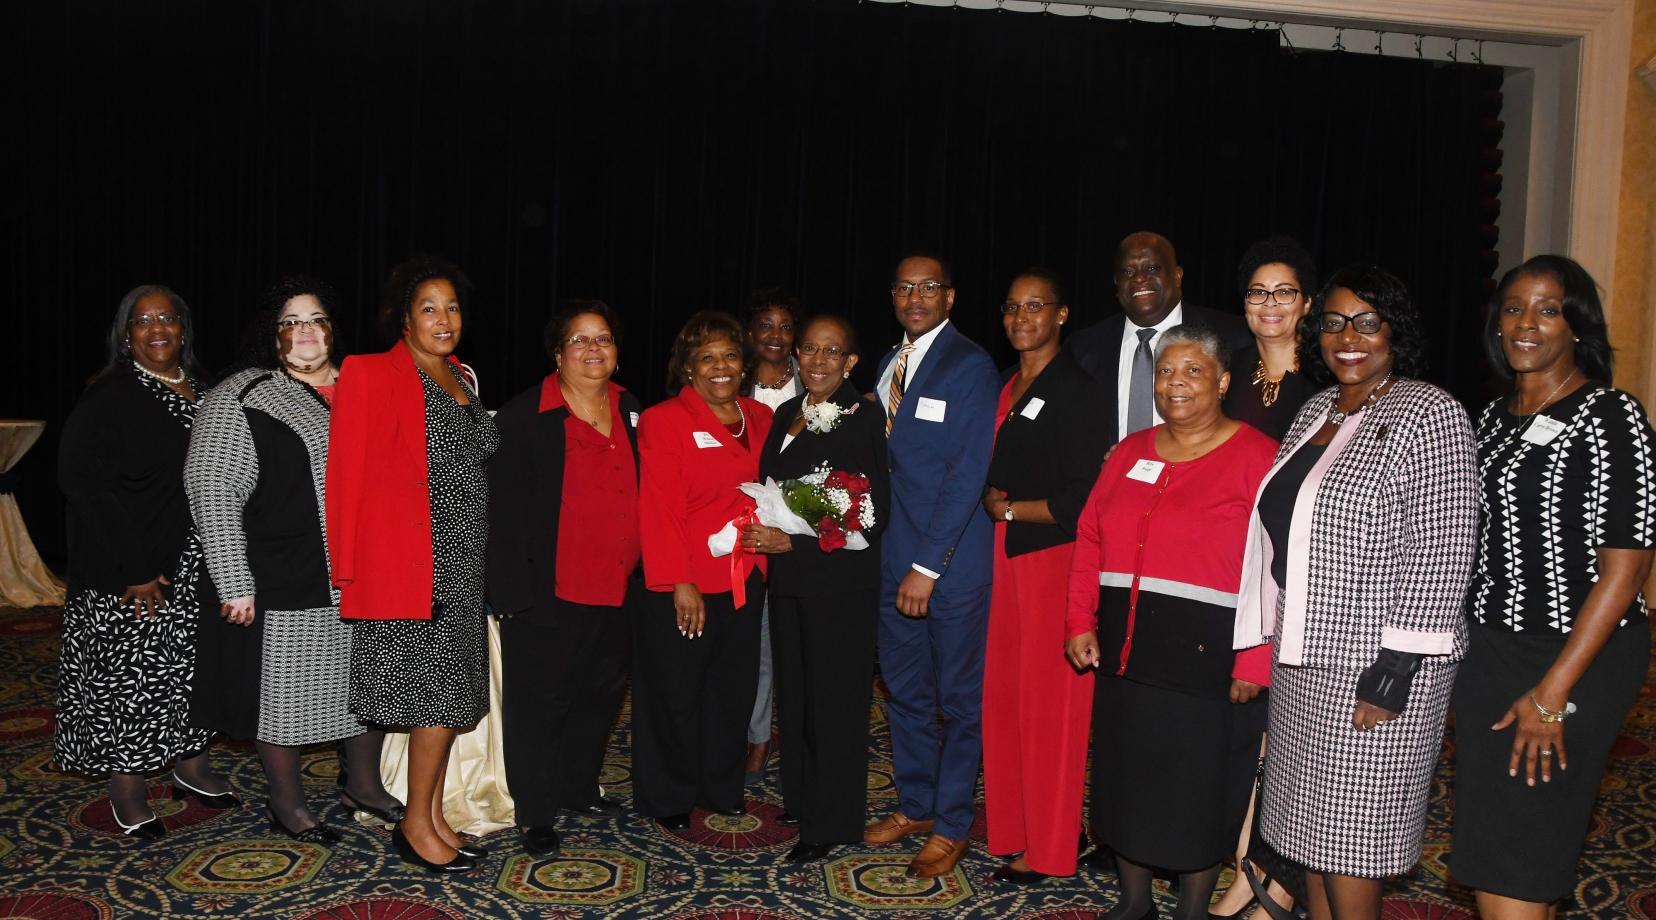 <p>A healthy contingent of the Delaware State University community showed up to witness alumna Dr. Reba Hollingsworth's induction into the Hall of Fame of Delaware Women during a ceremony at Dover Downs Hotel & Casino.</p>